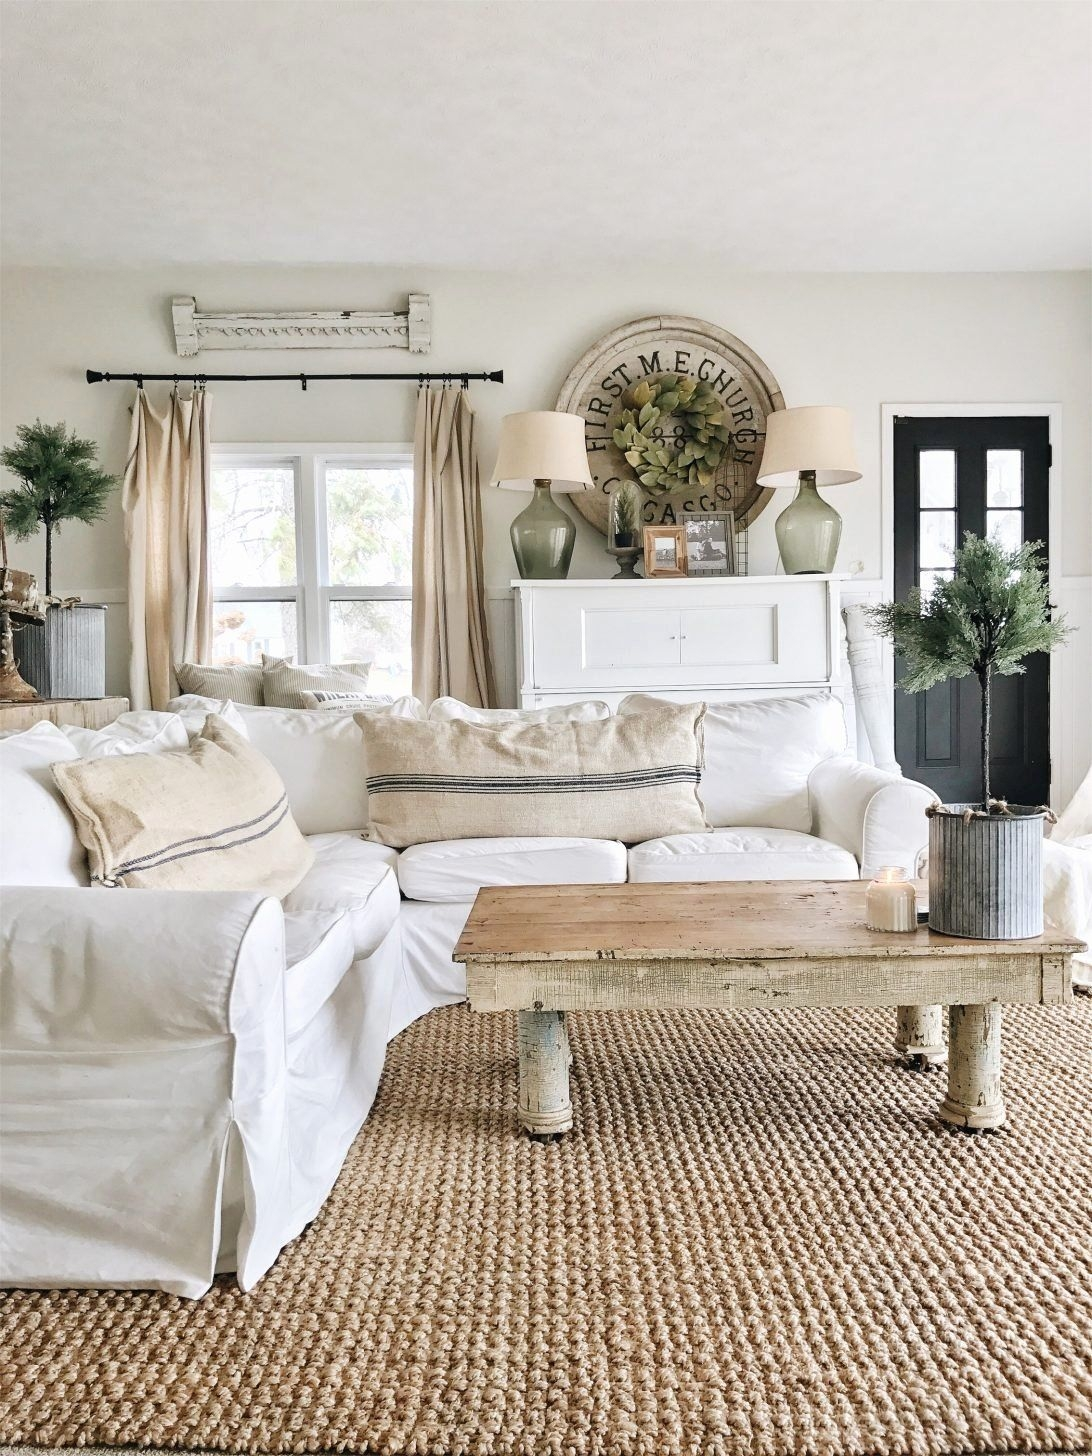 Pin by Stephanie Pope on Farmhouse Interior in 2020